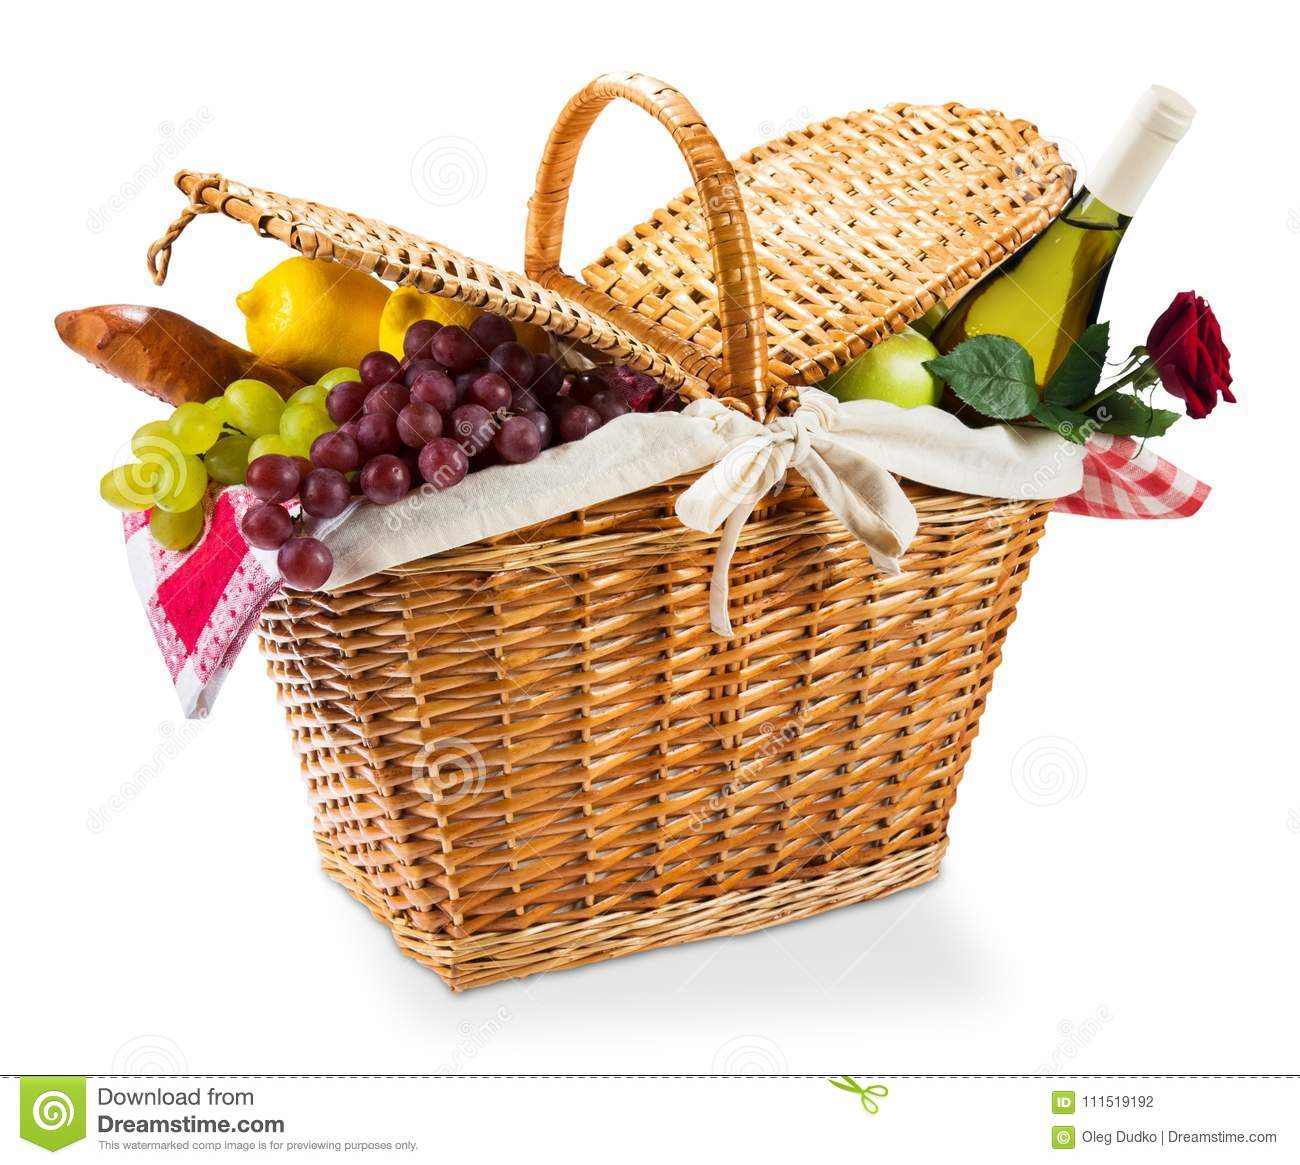 Wicker picnic basket with a red gingham cloth on a